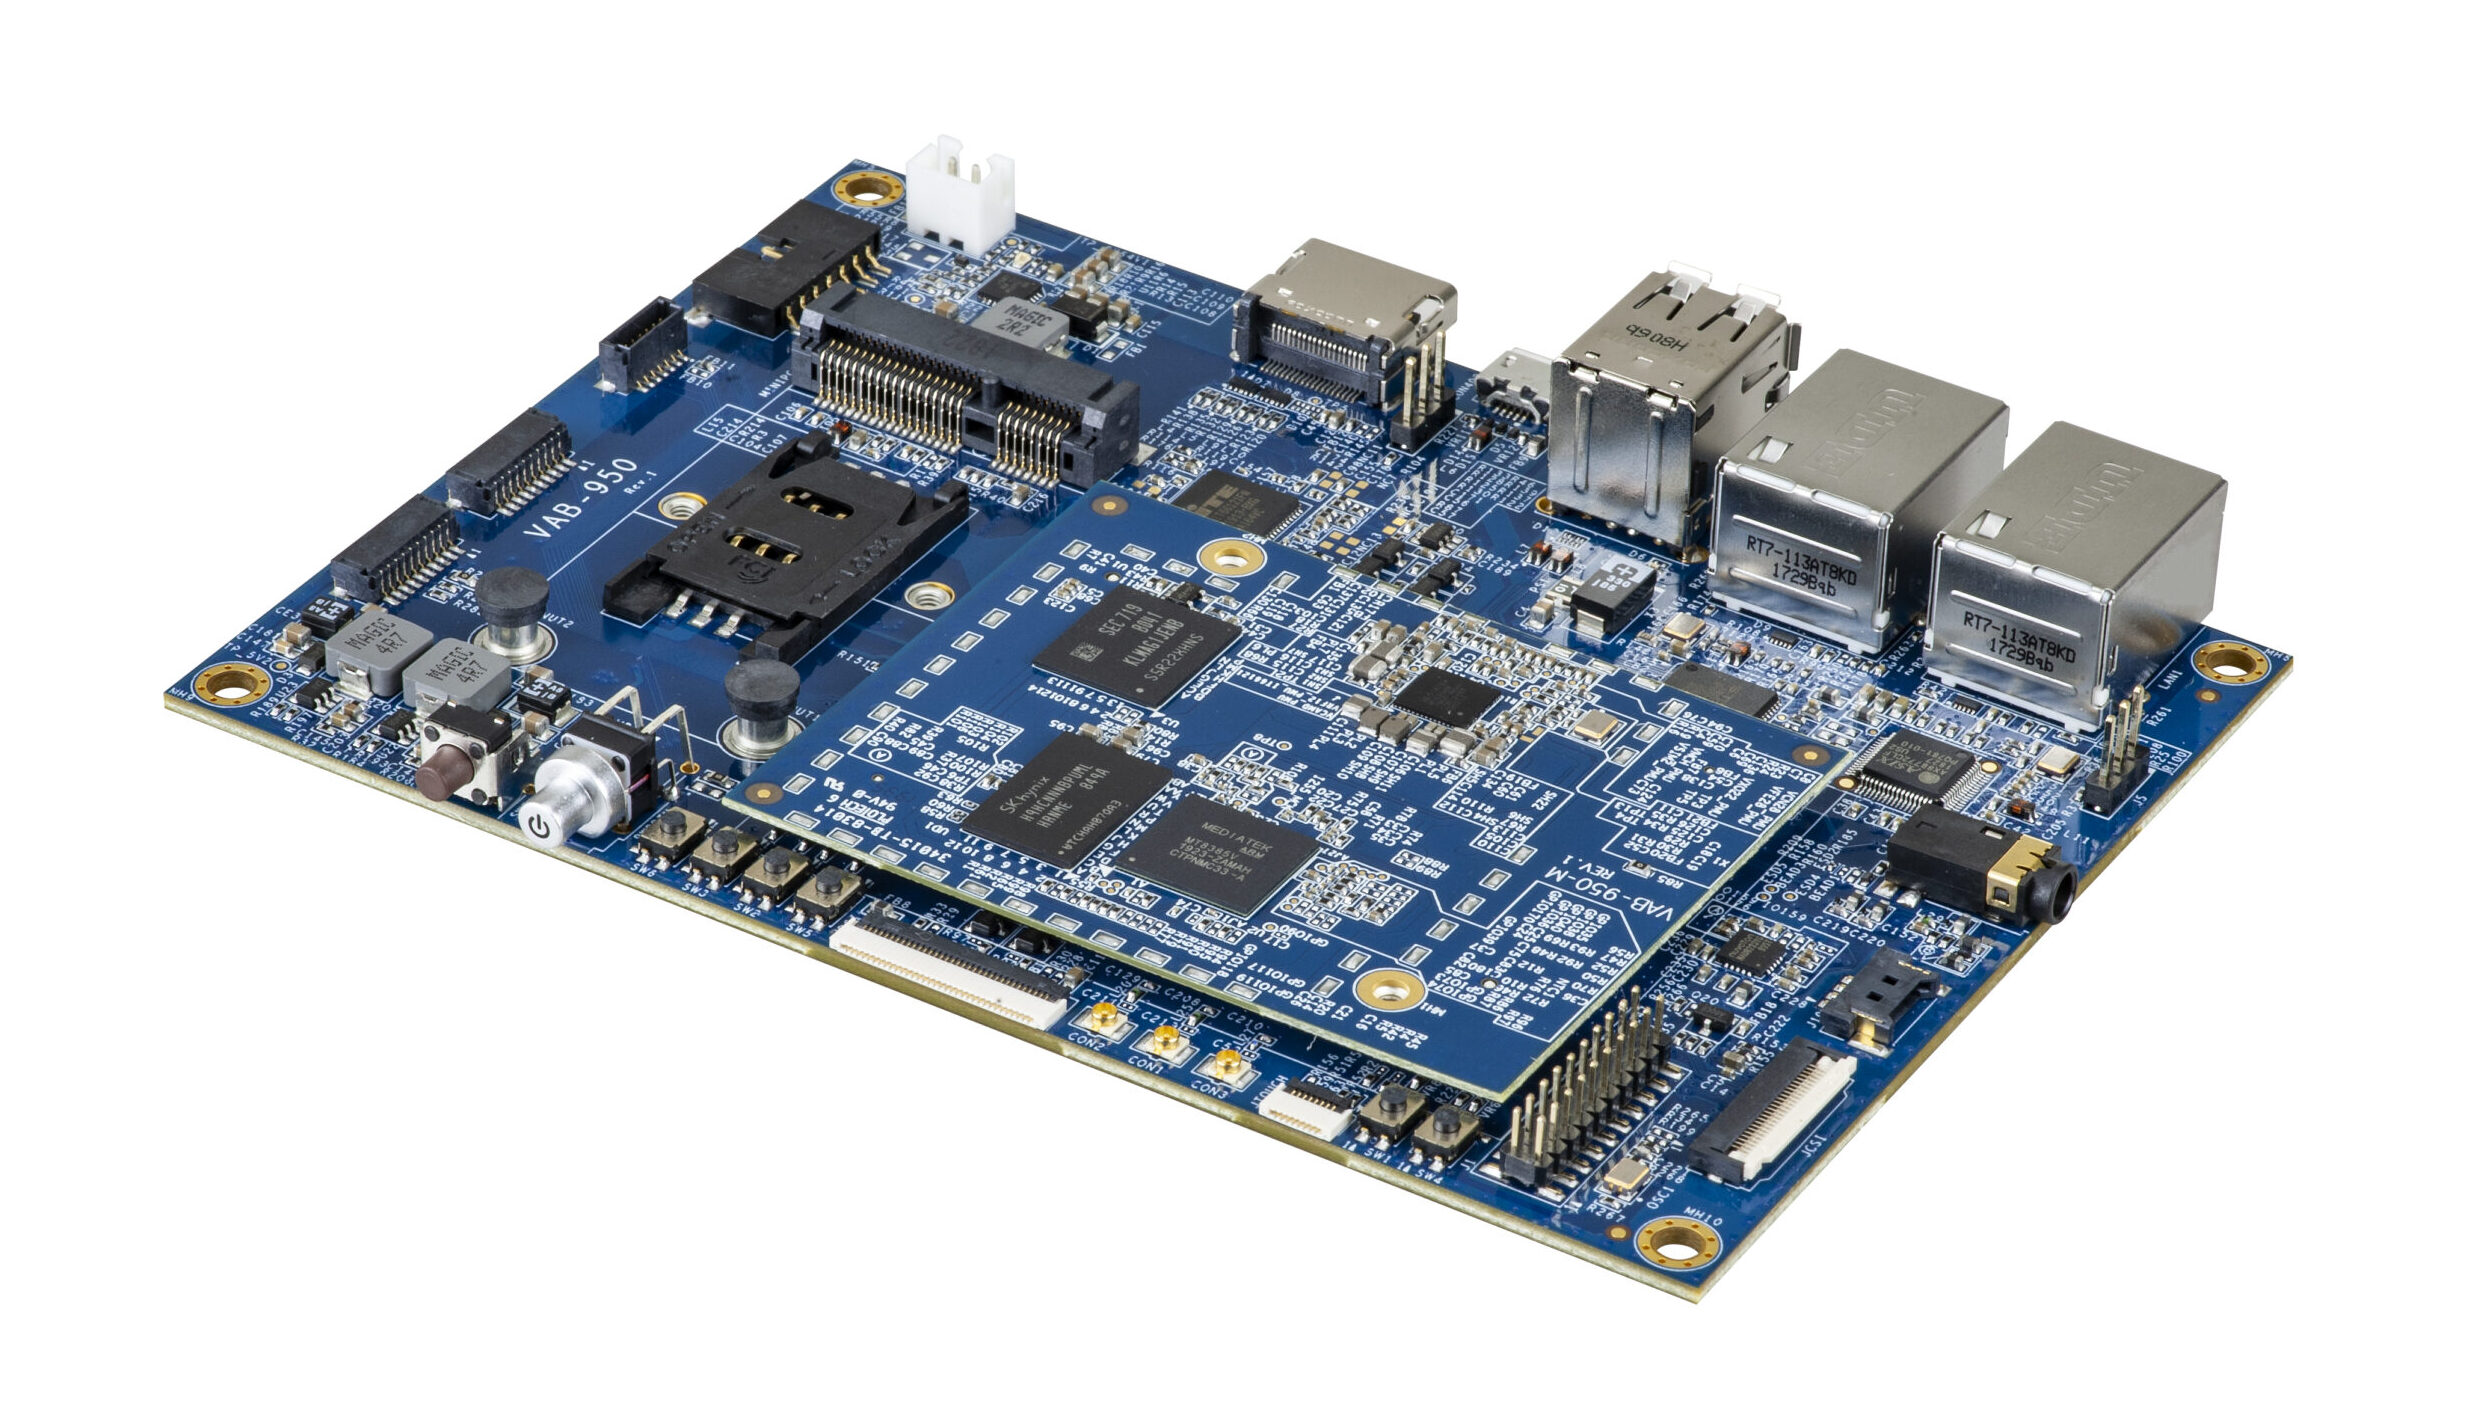 VIA Launches VIA VAB-950 Board Powered by MediaTek i500 AIoT Platform